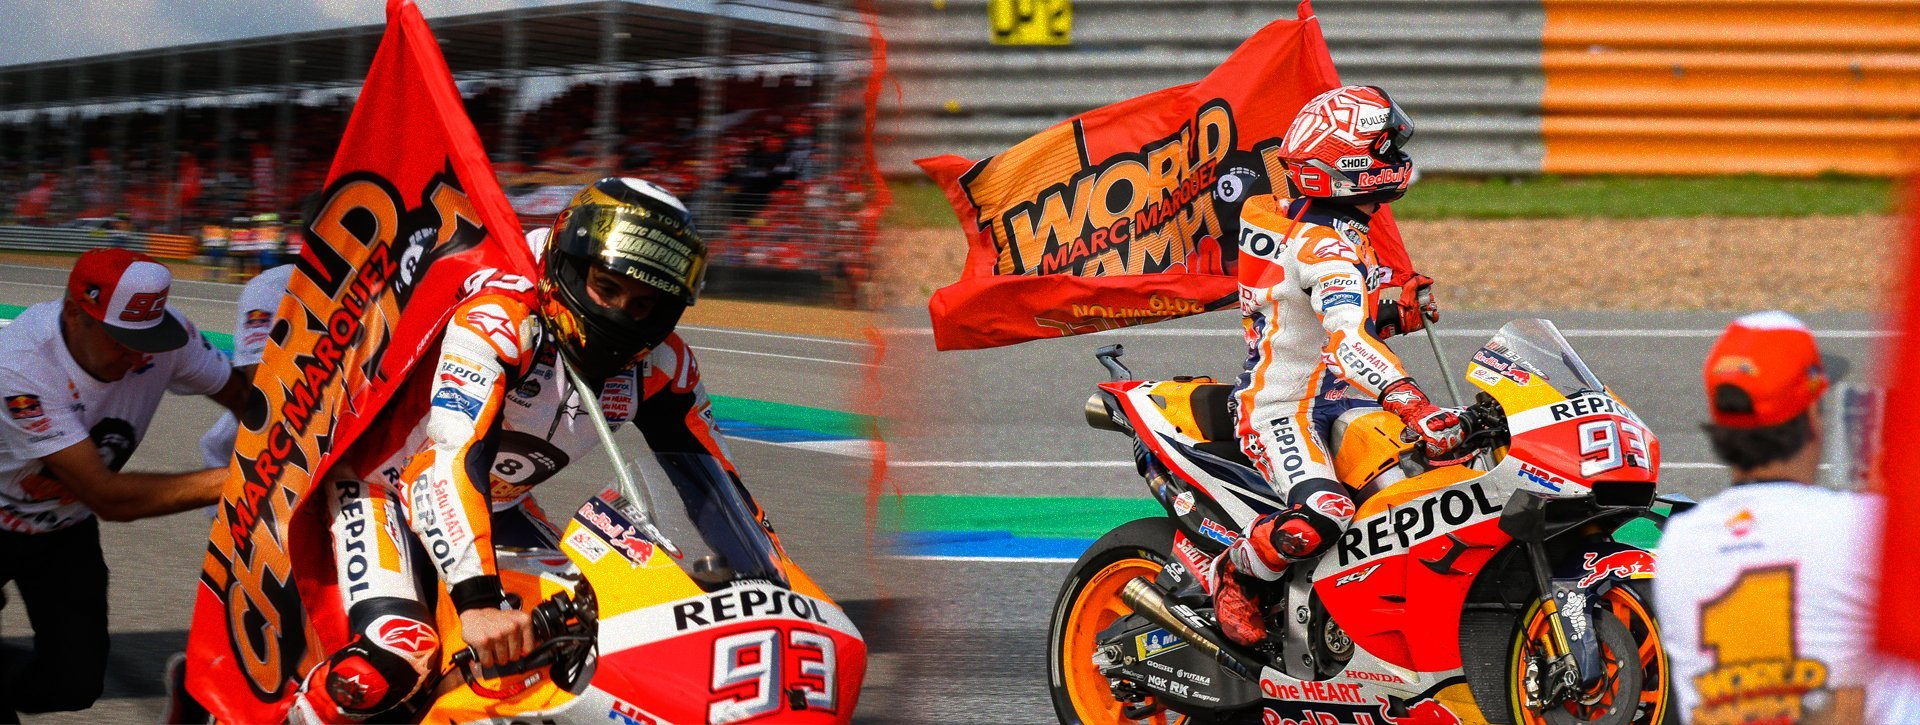 Congratulations Repsol Honda Team